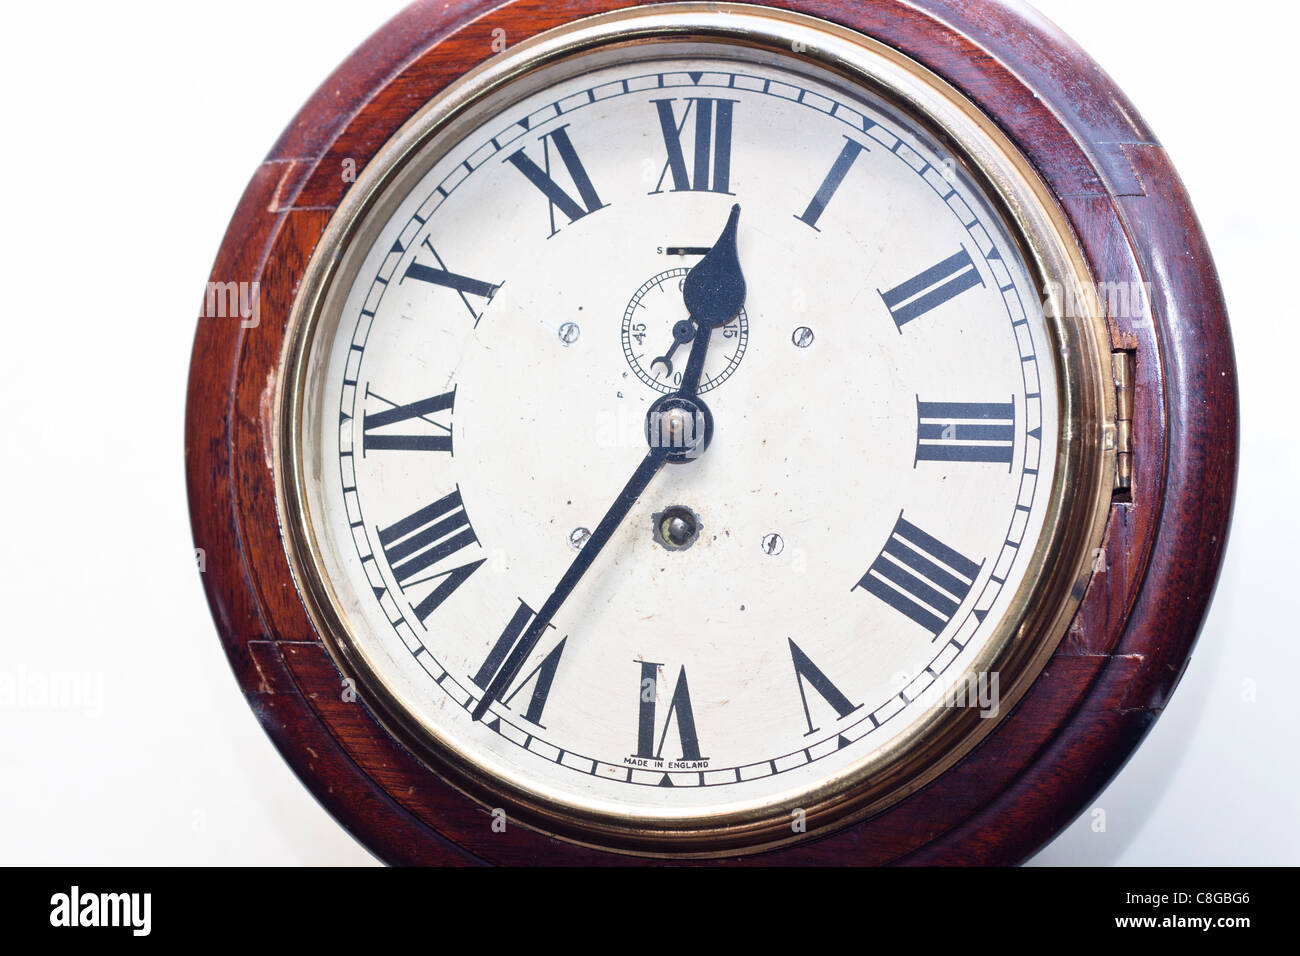 Detail of antique clock face. Made in England. - Stock Image